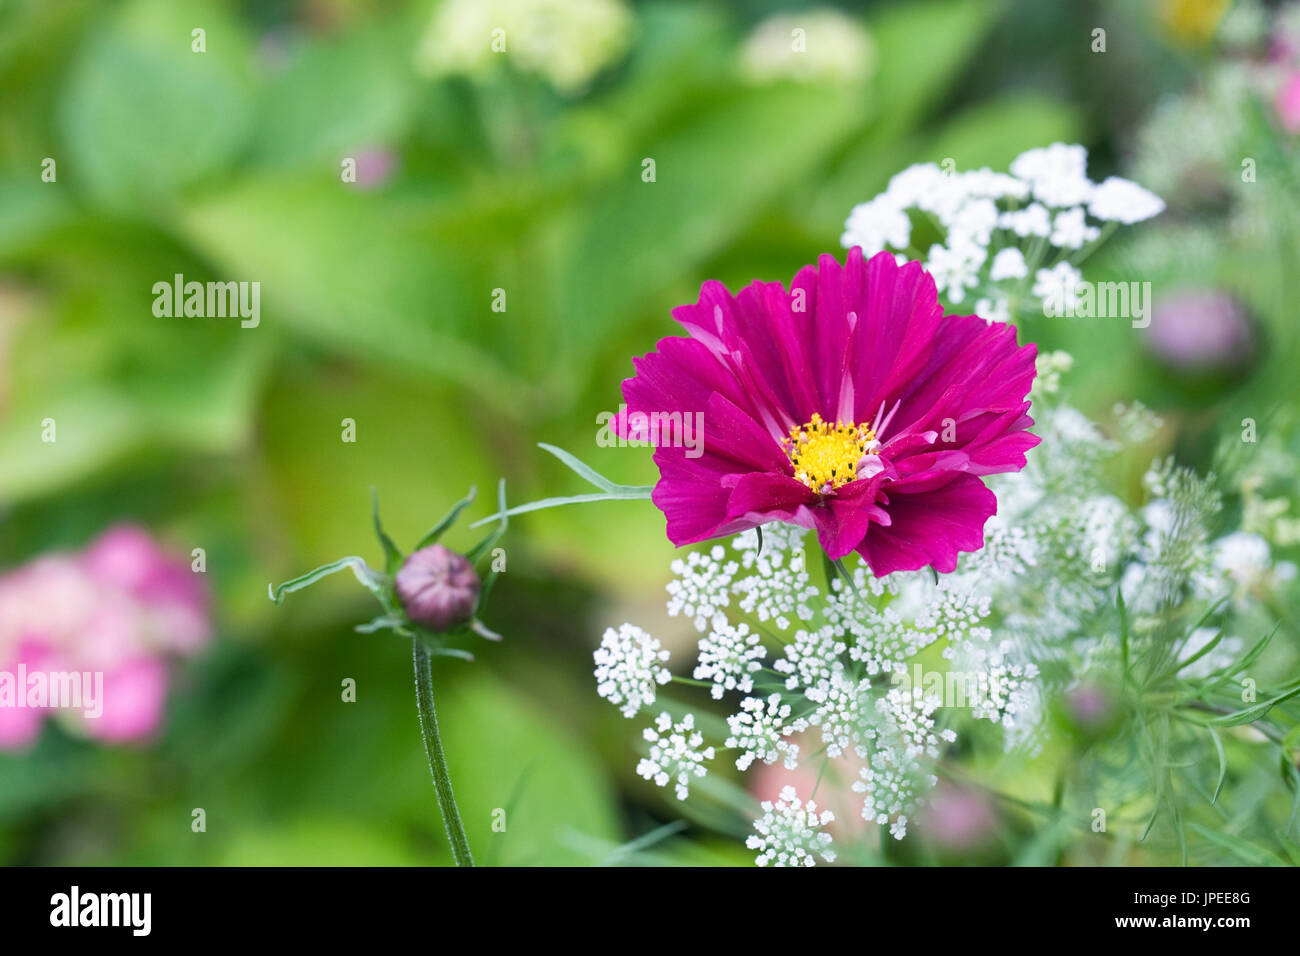 Cosmos bipinnatus and Ammi majus 'Graceland' flowers. Stock Photo